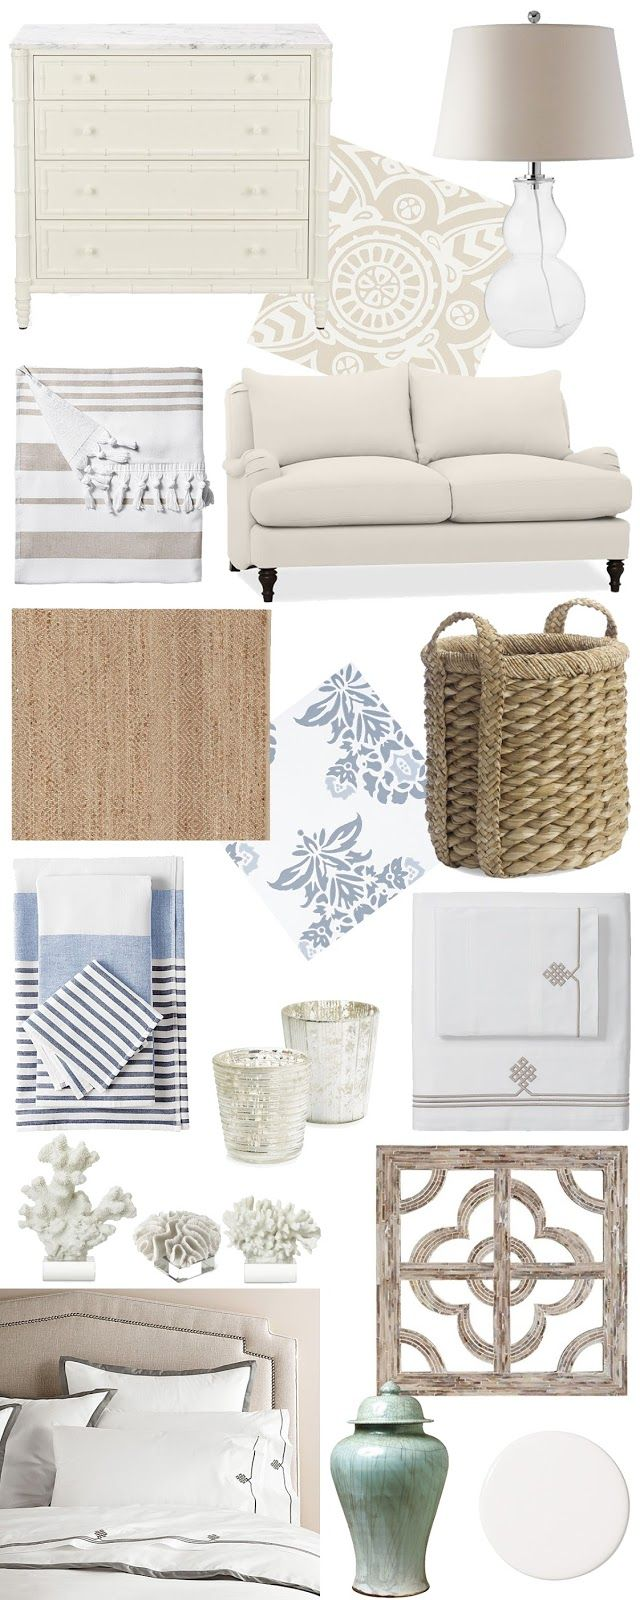 coastal decor white wicker simplistic furniture home decor dream home style pinterest. Black Bedroom Furniture Sets. Home Design Ideas